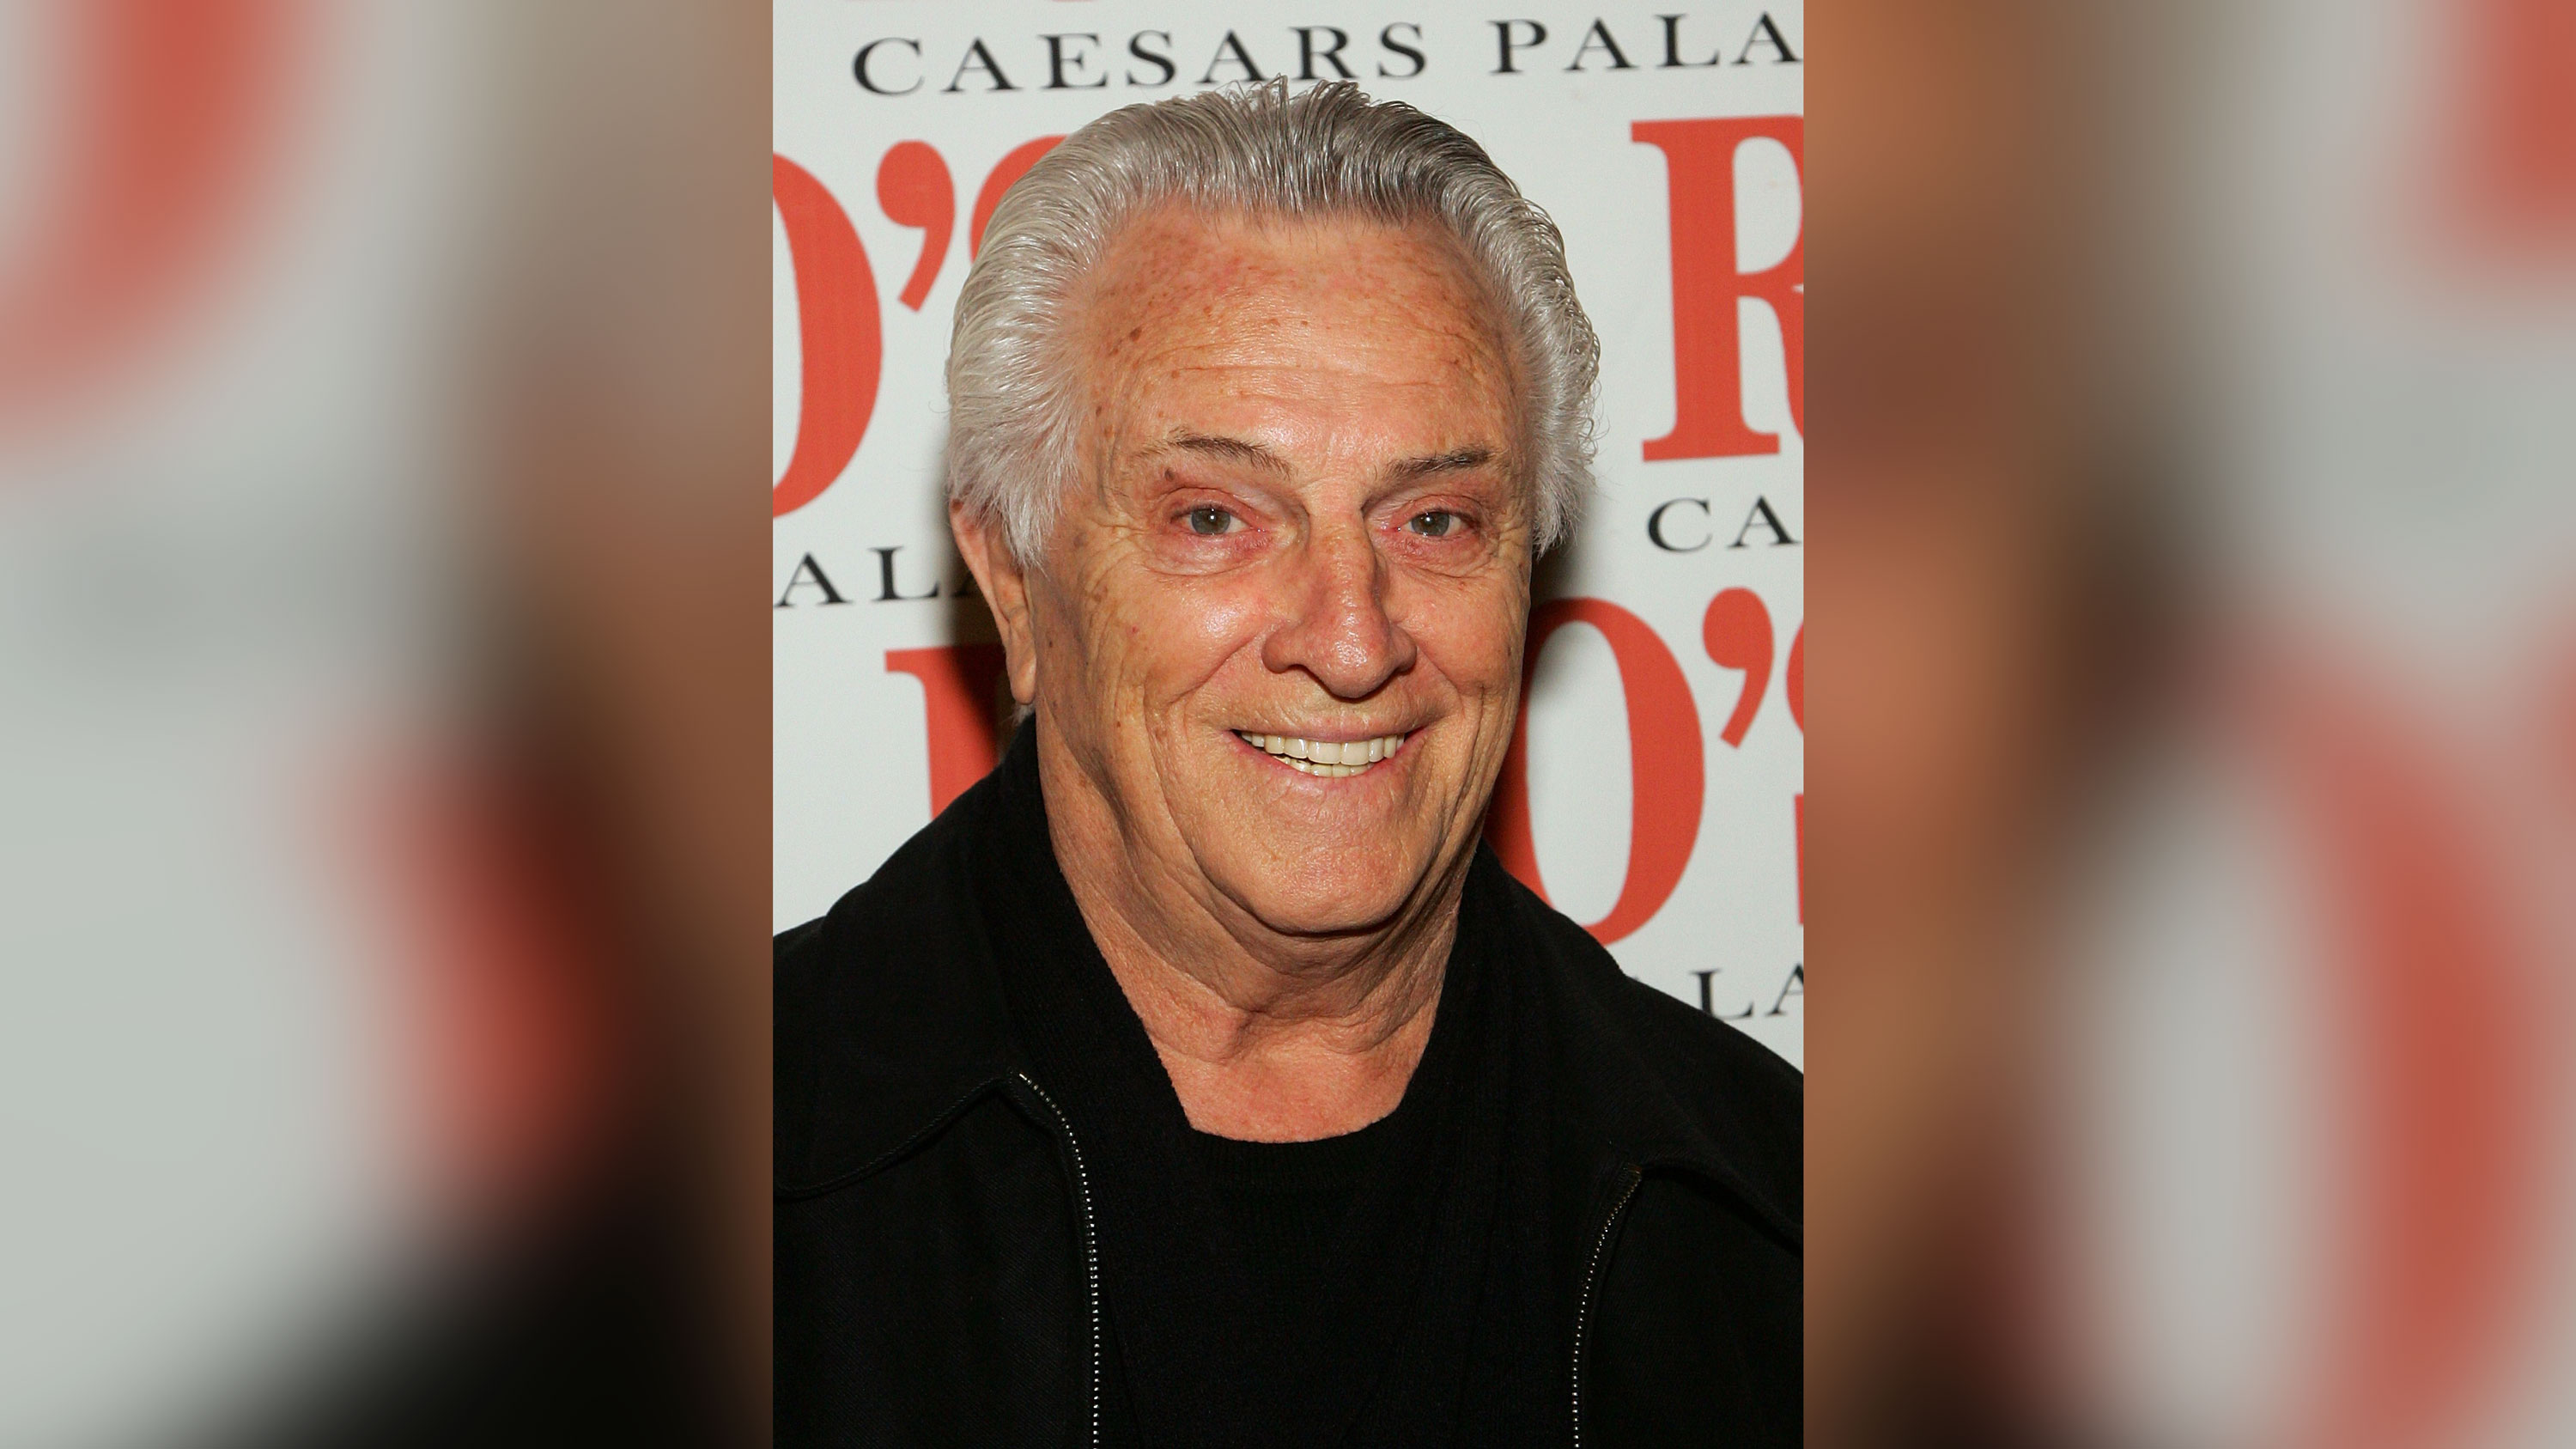 Tommy DeVito, a founding member of The Four Seasons, dies from Covid-19 complications